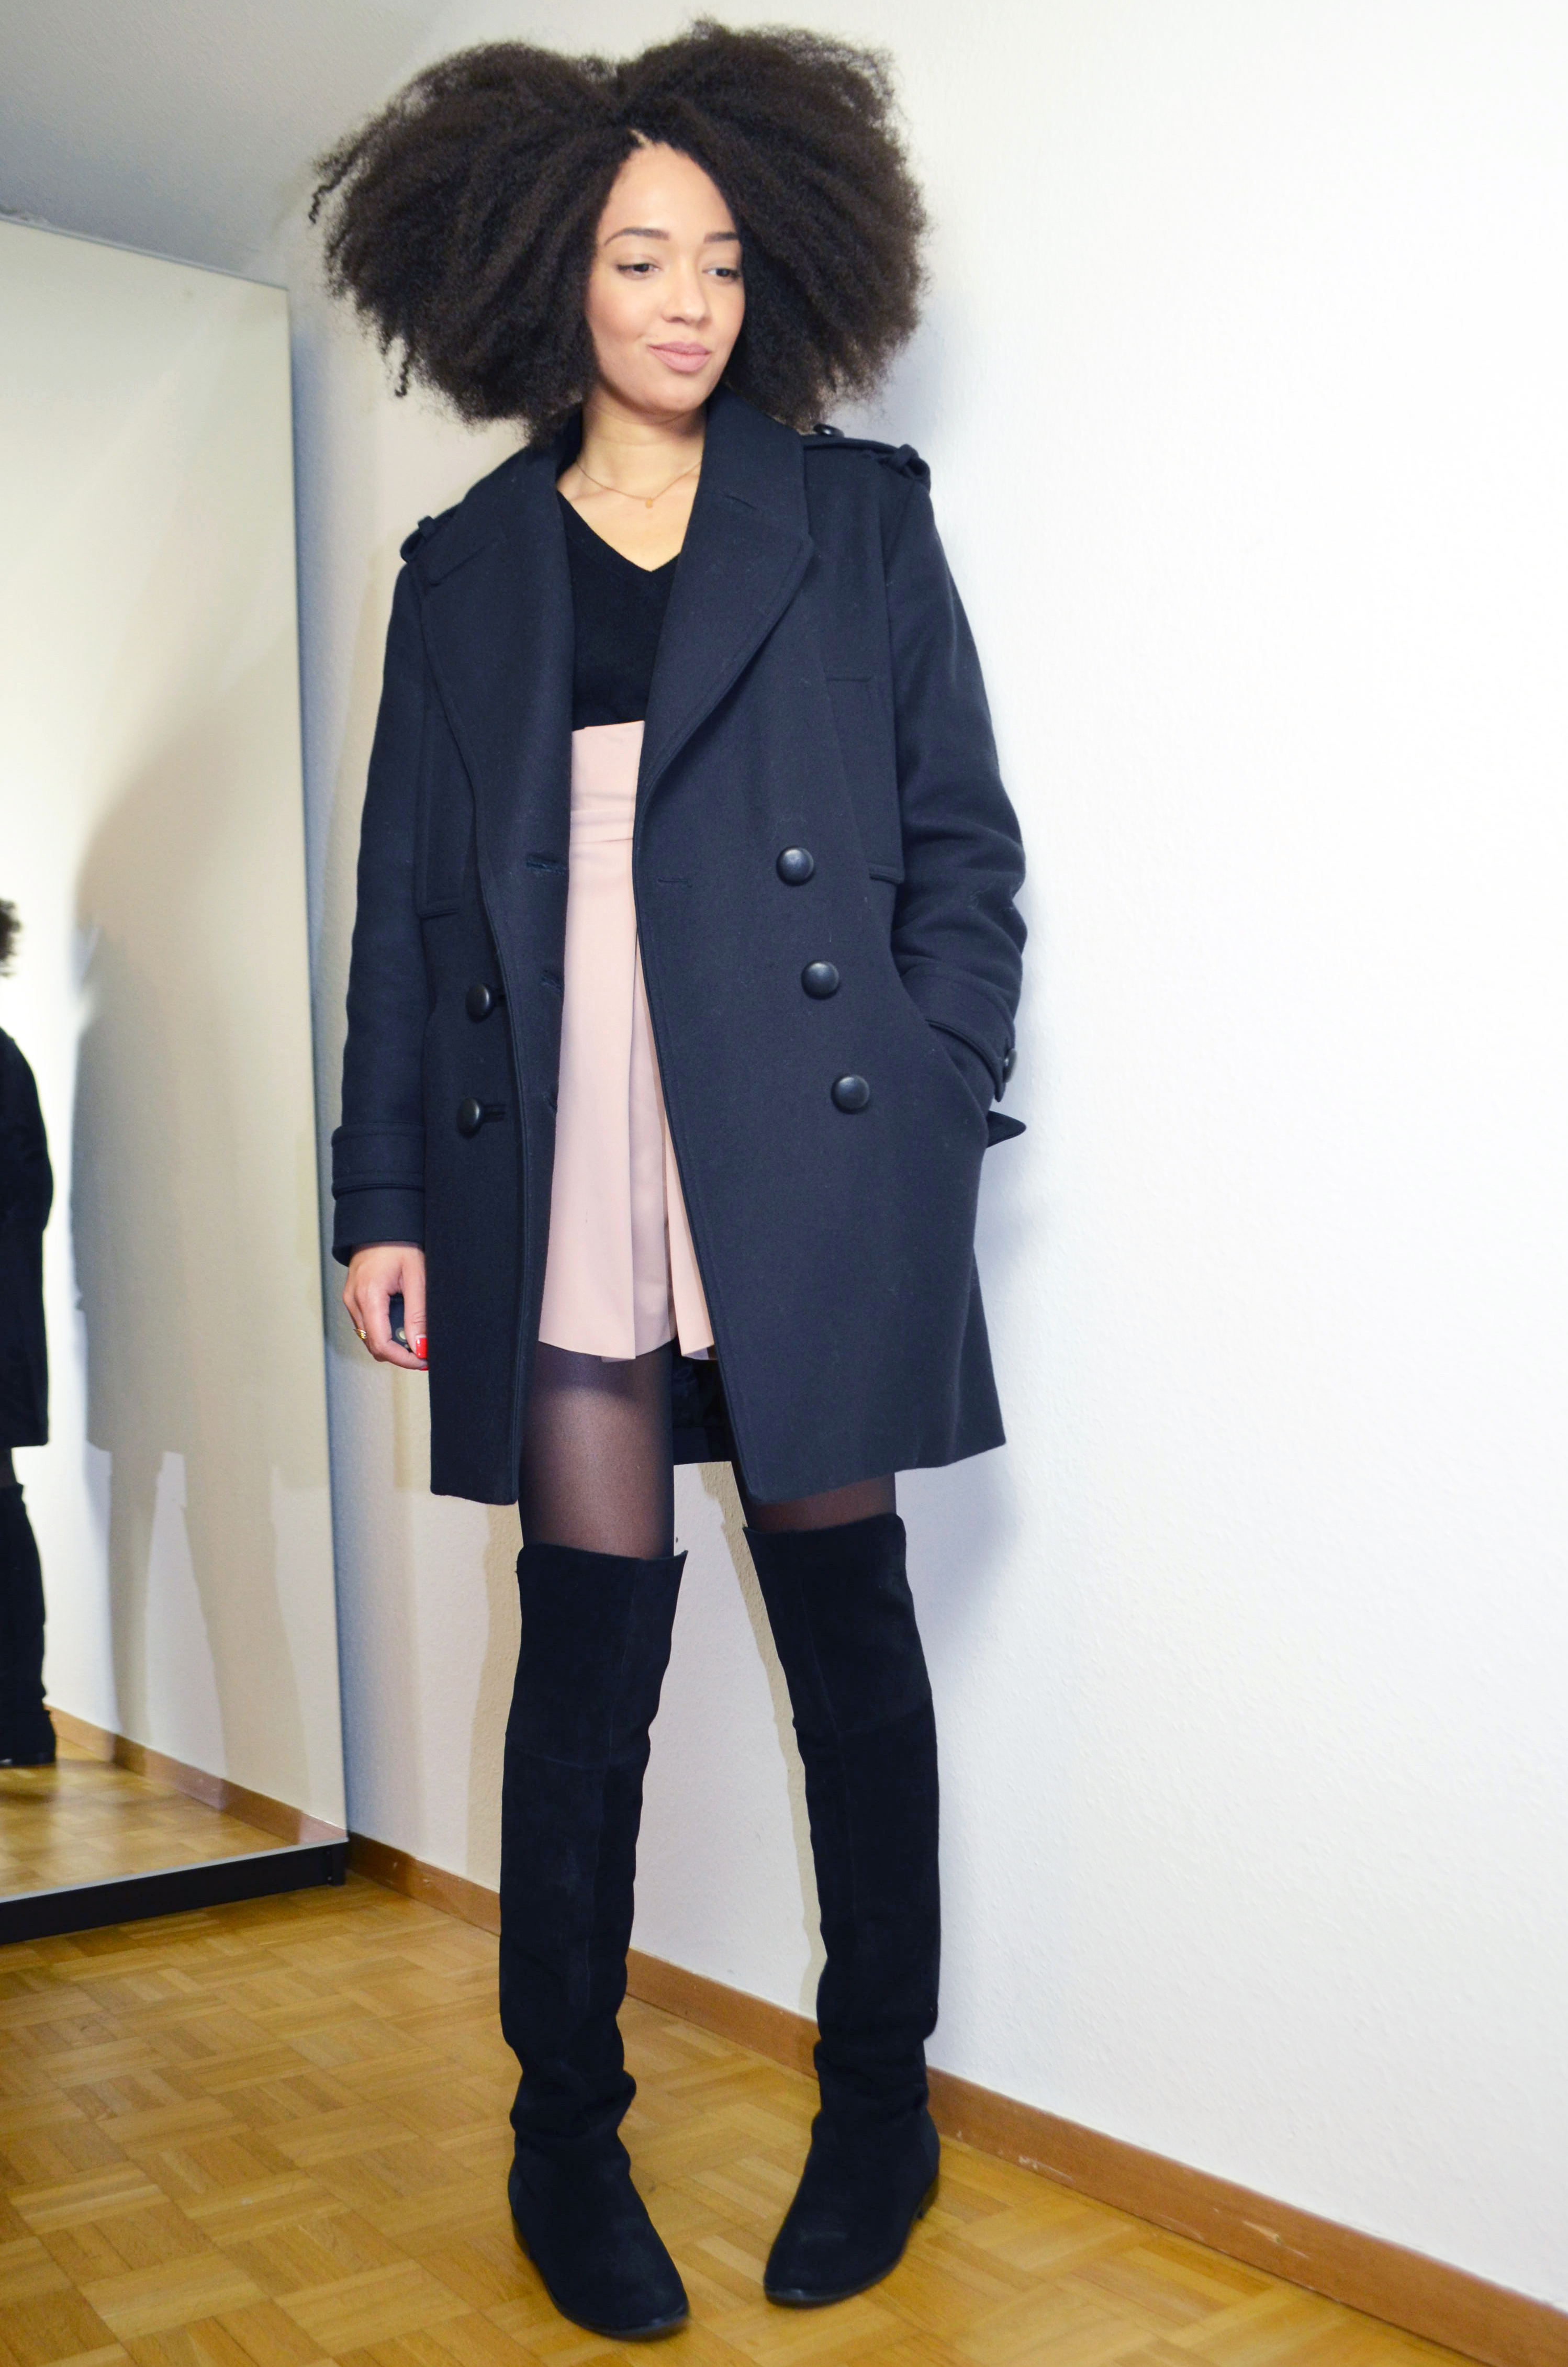 mercredie-blog-la-redoute-coralie-marabelle-short-chinese-laundry-riley-over-the-knee-boots-cuissardes-karly-coat-caban-manteau-isabel-marant